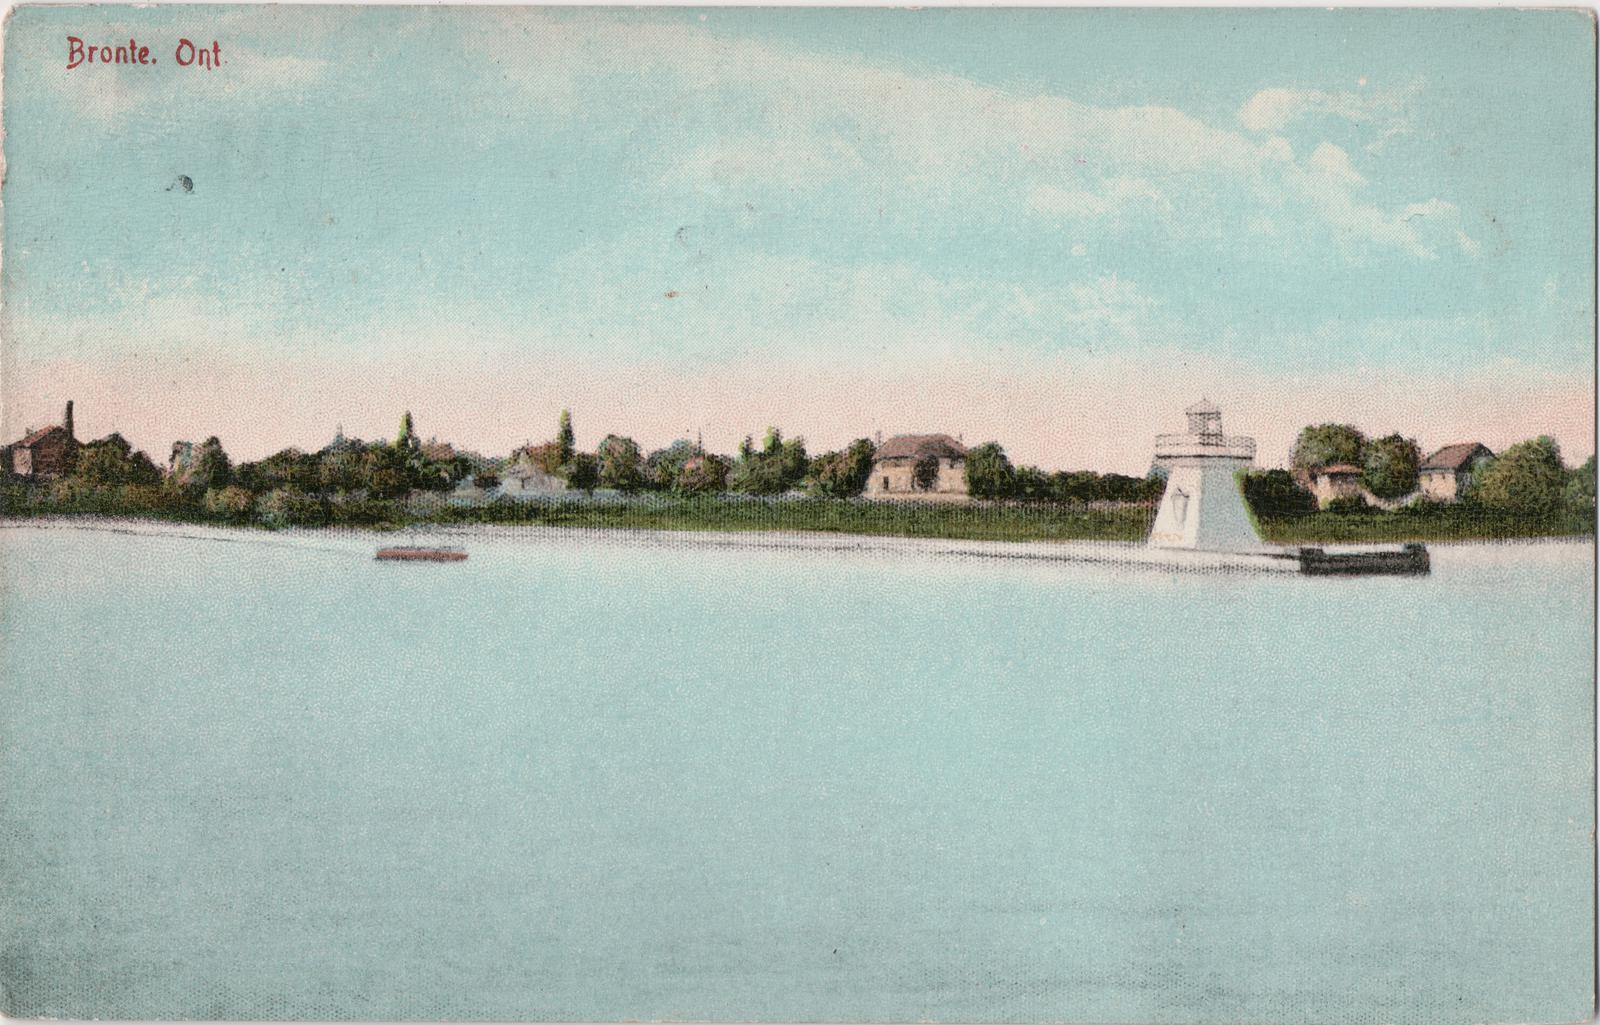 Lighthouse circa 1910, Bronte, Ont. (Provided by Bronte Historical Society)